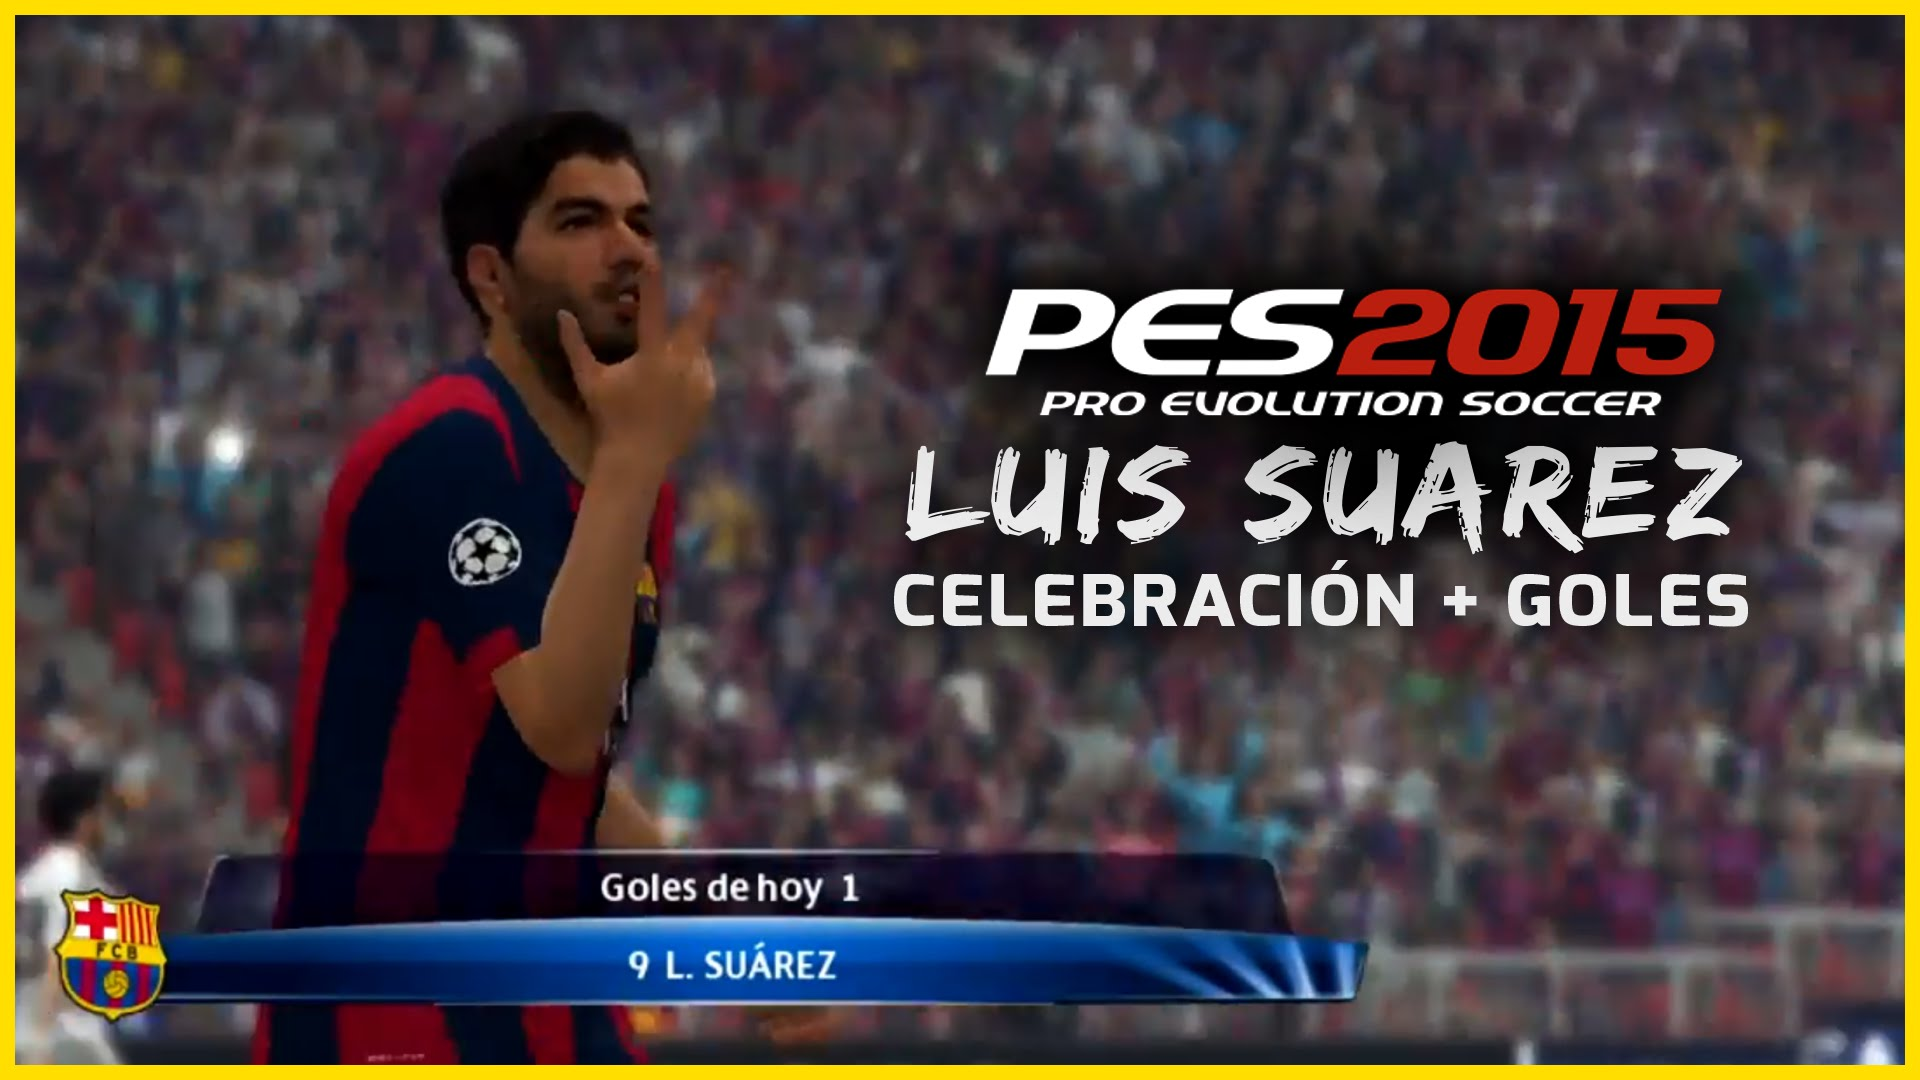 Luis Suarez Wallpaper 2015 7 1920x1080